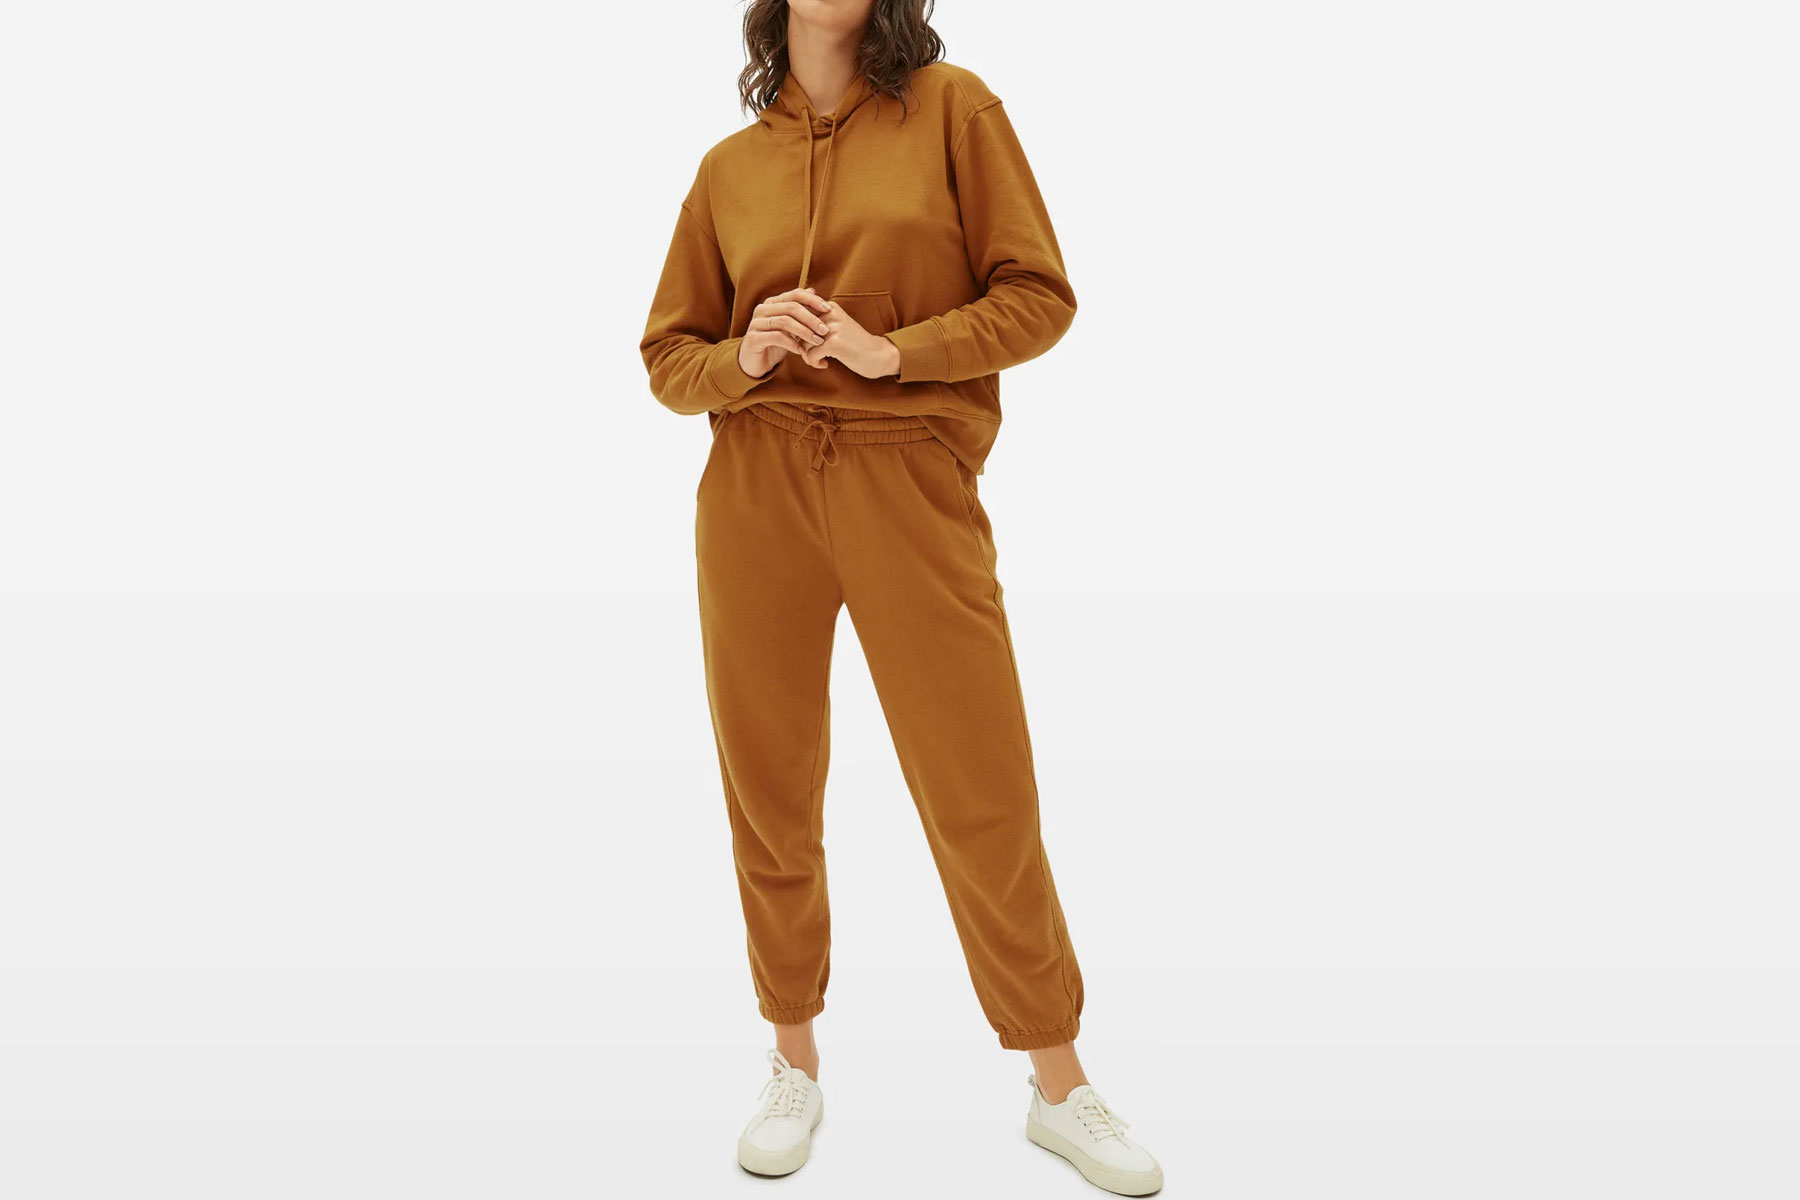 Woman wearing camel/tan sweatsuit